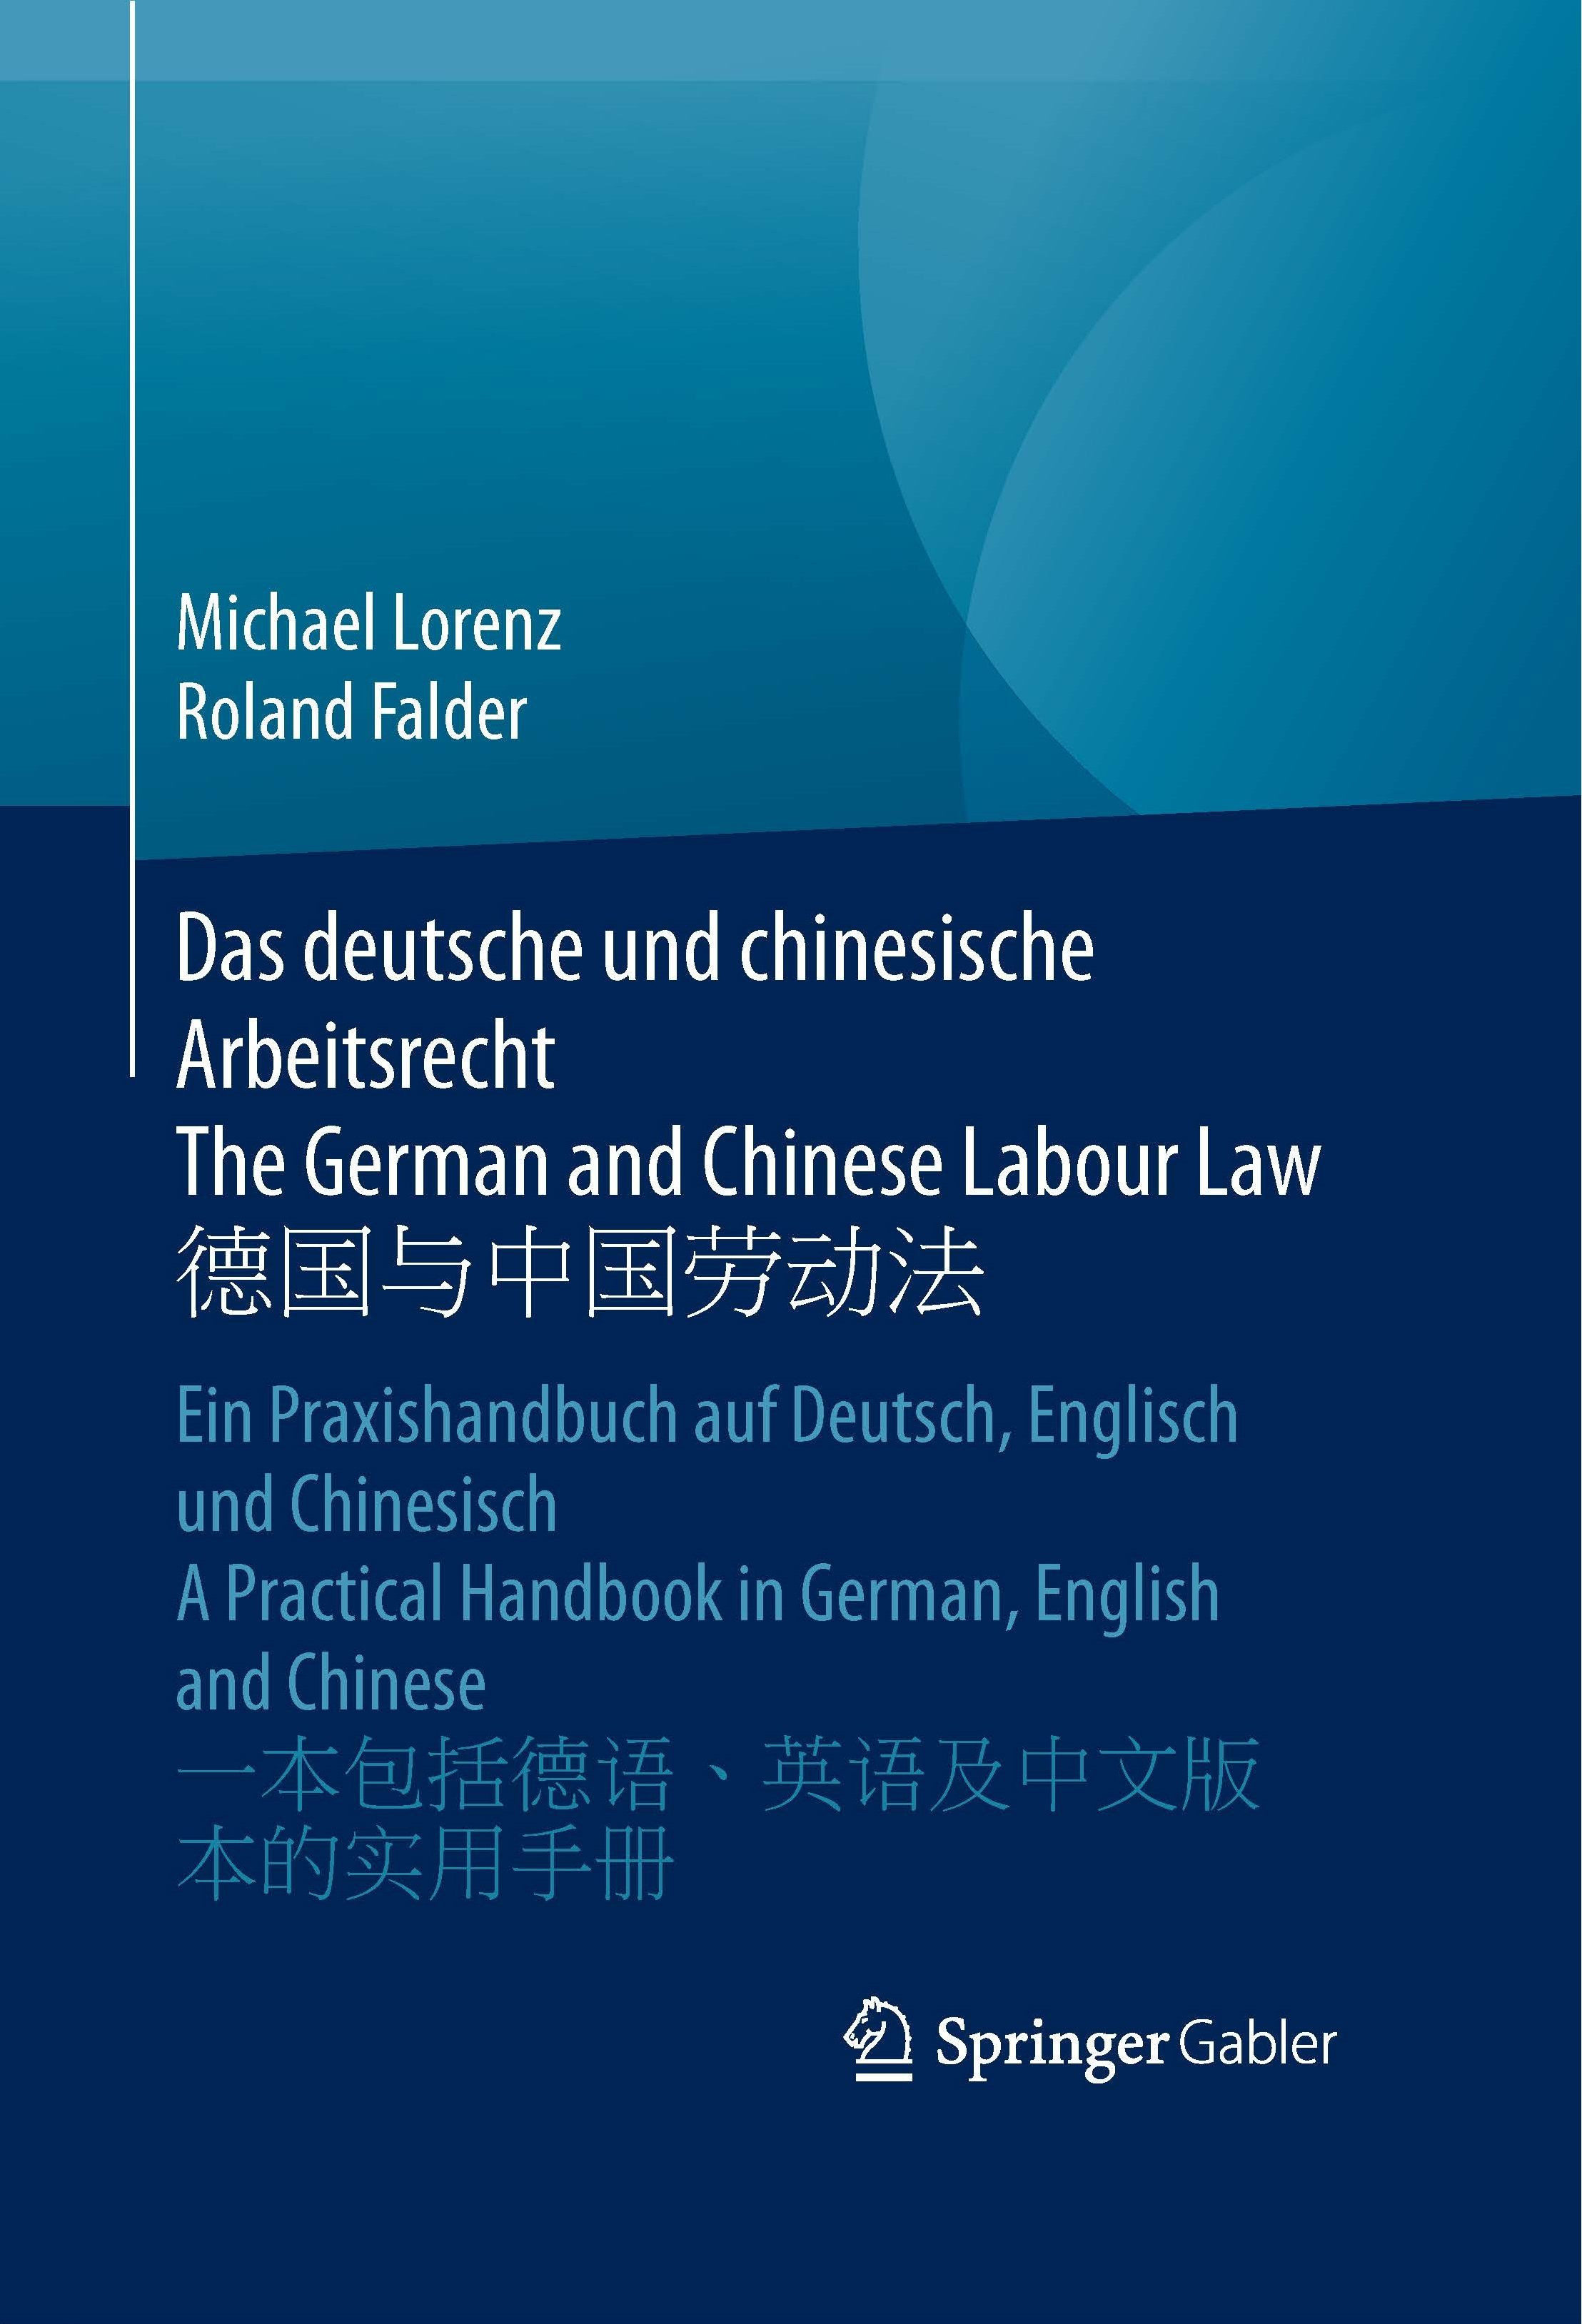 The German and Chinese Labour Law